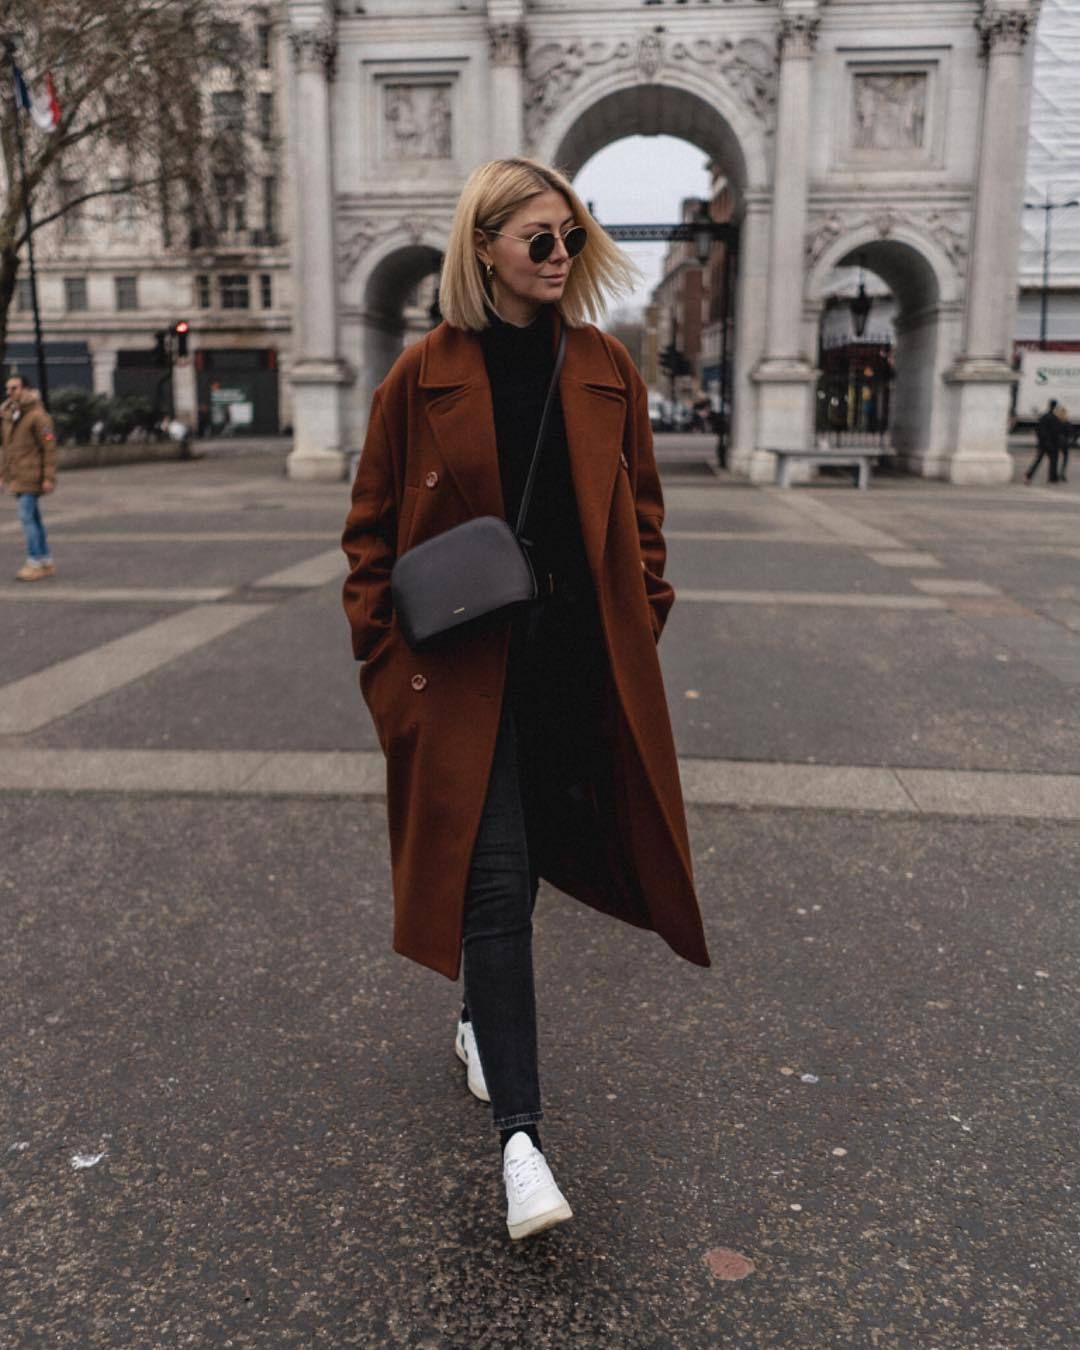 Find Out Where To Get The Coat #winterfashion